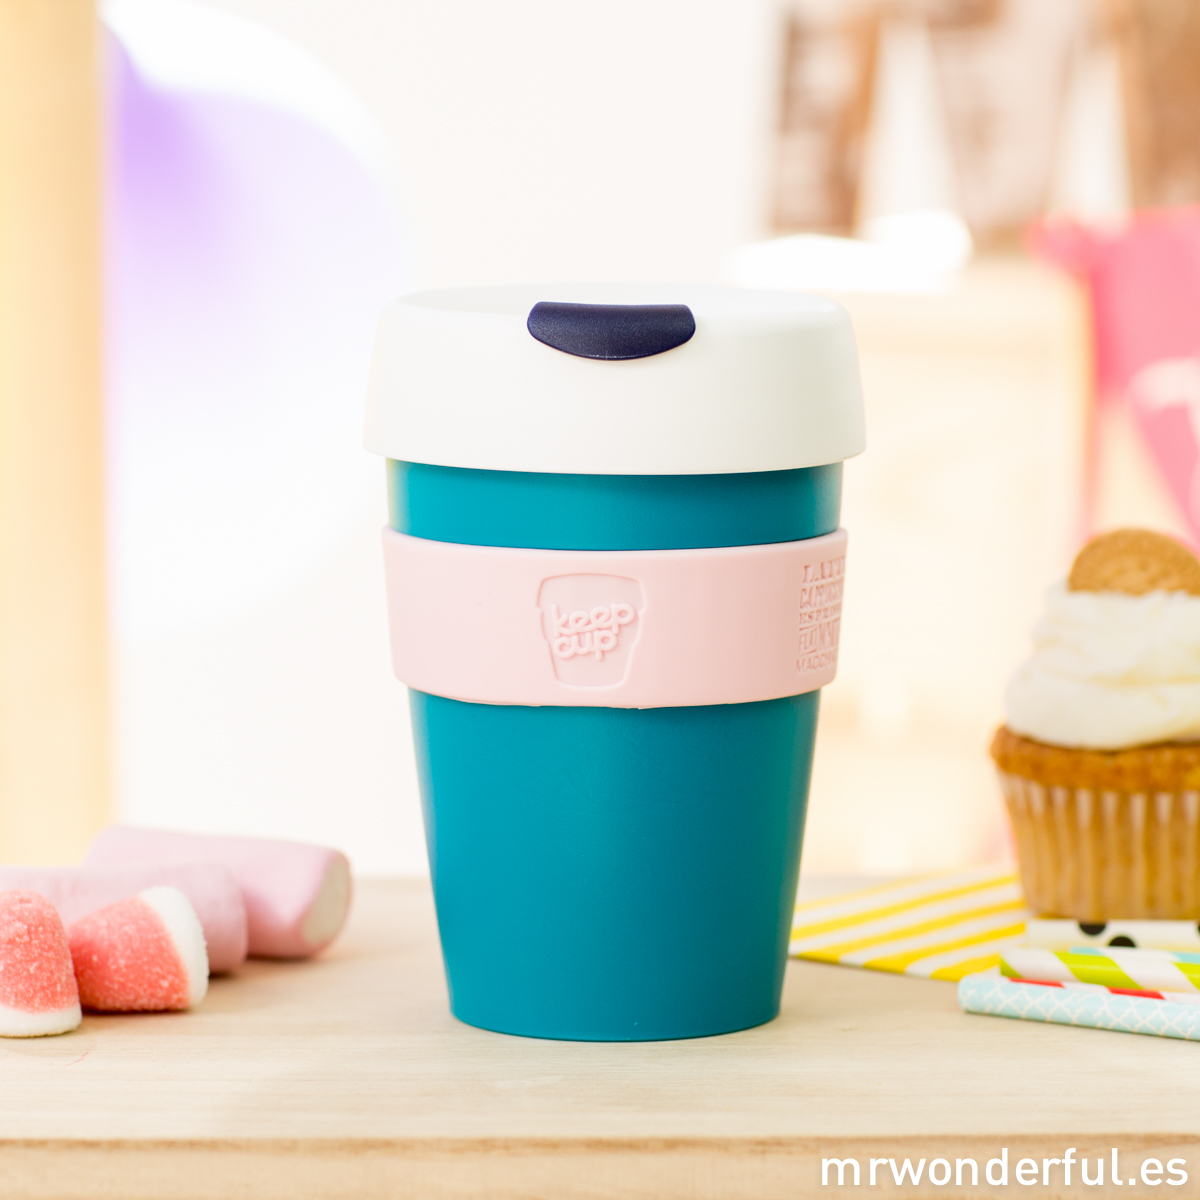 mrwonderful_8436547191383_KEEPCUP-006_Keepcup-Paris-M_01